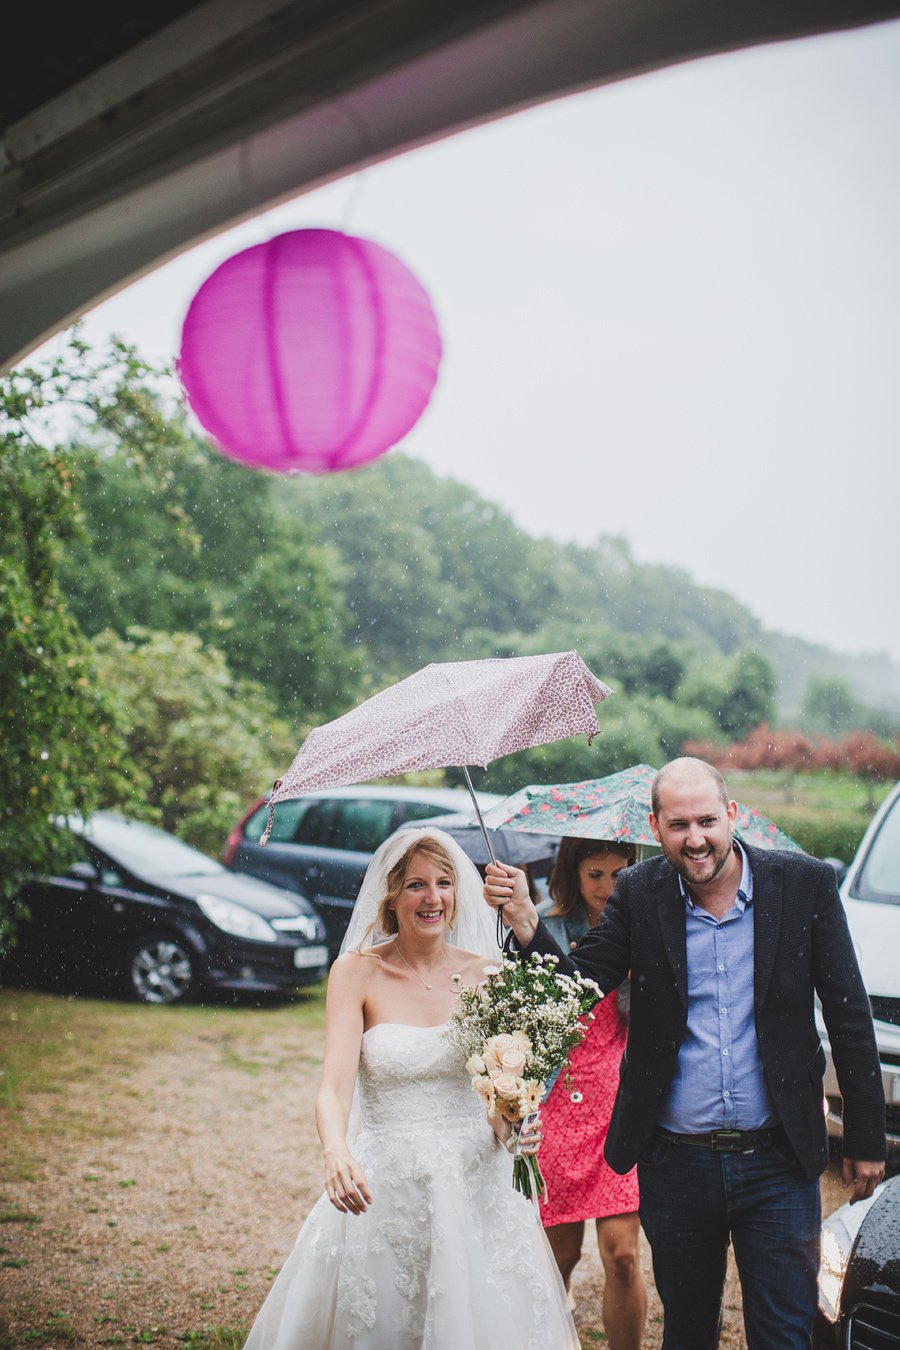 Horsham-Wedding-Photographer-Emma-and-Mike-Fazackarley-34